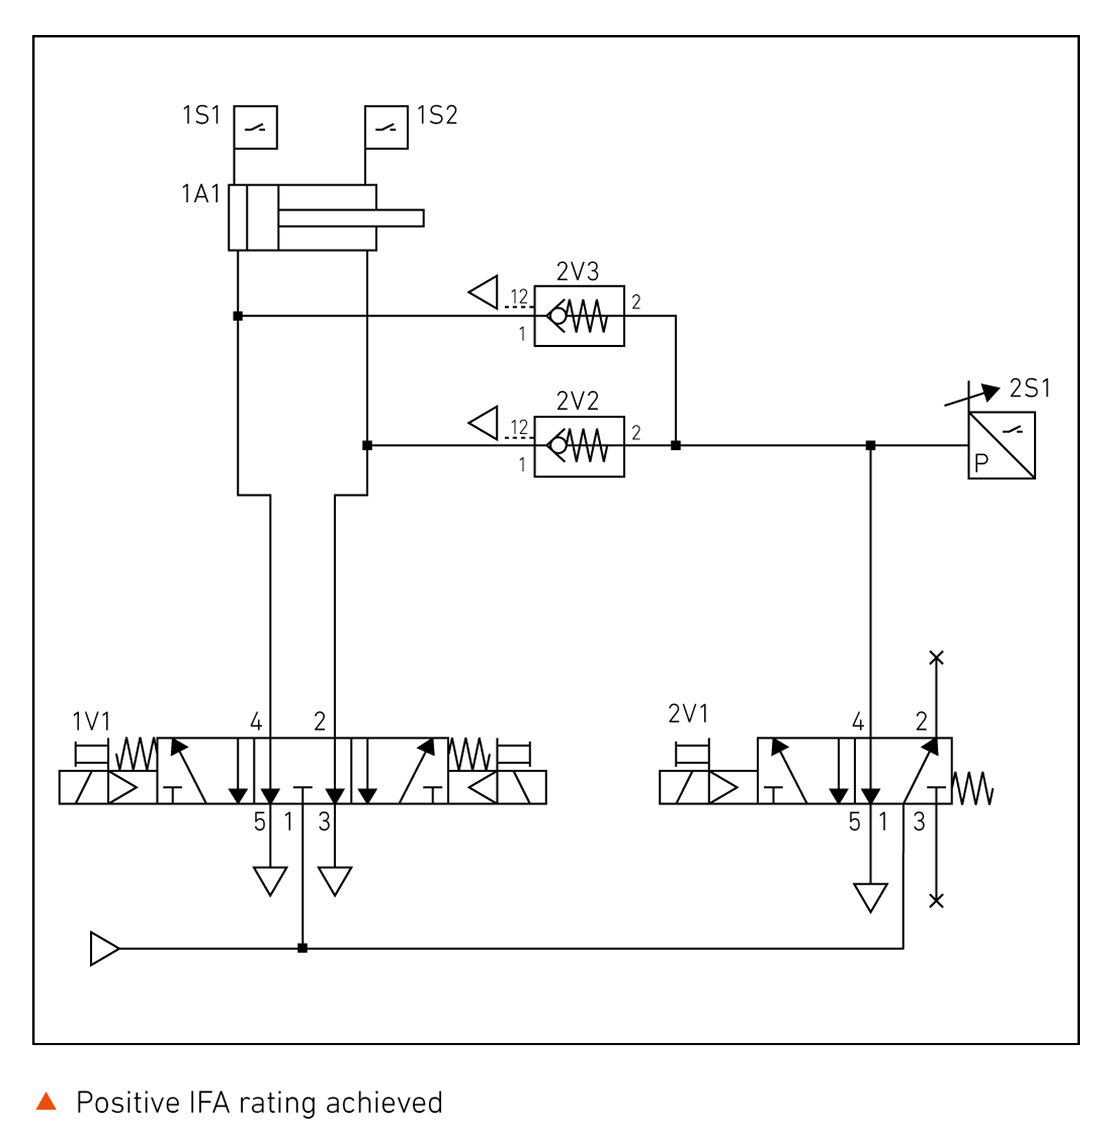 hight resolution of circuit example safe exhaust cat 3 potential pl a e